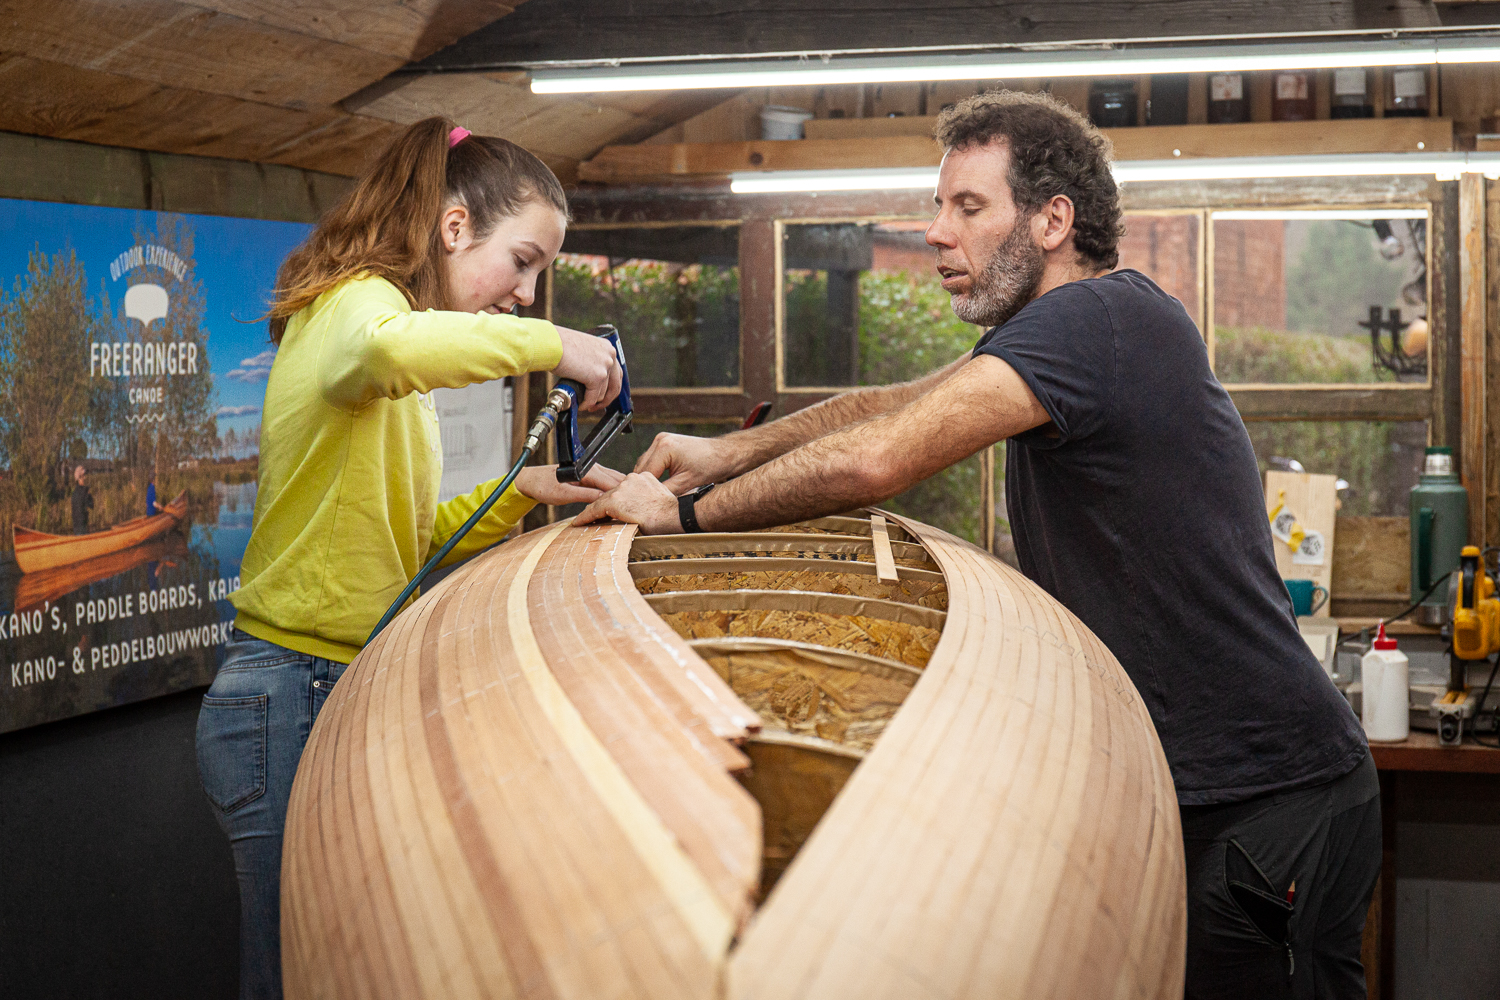 Workshop canoe building